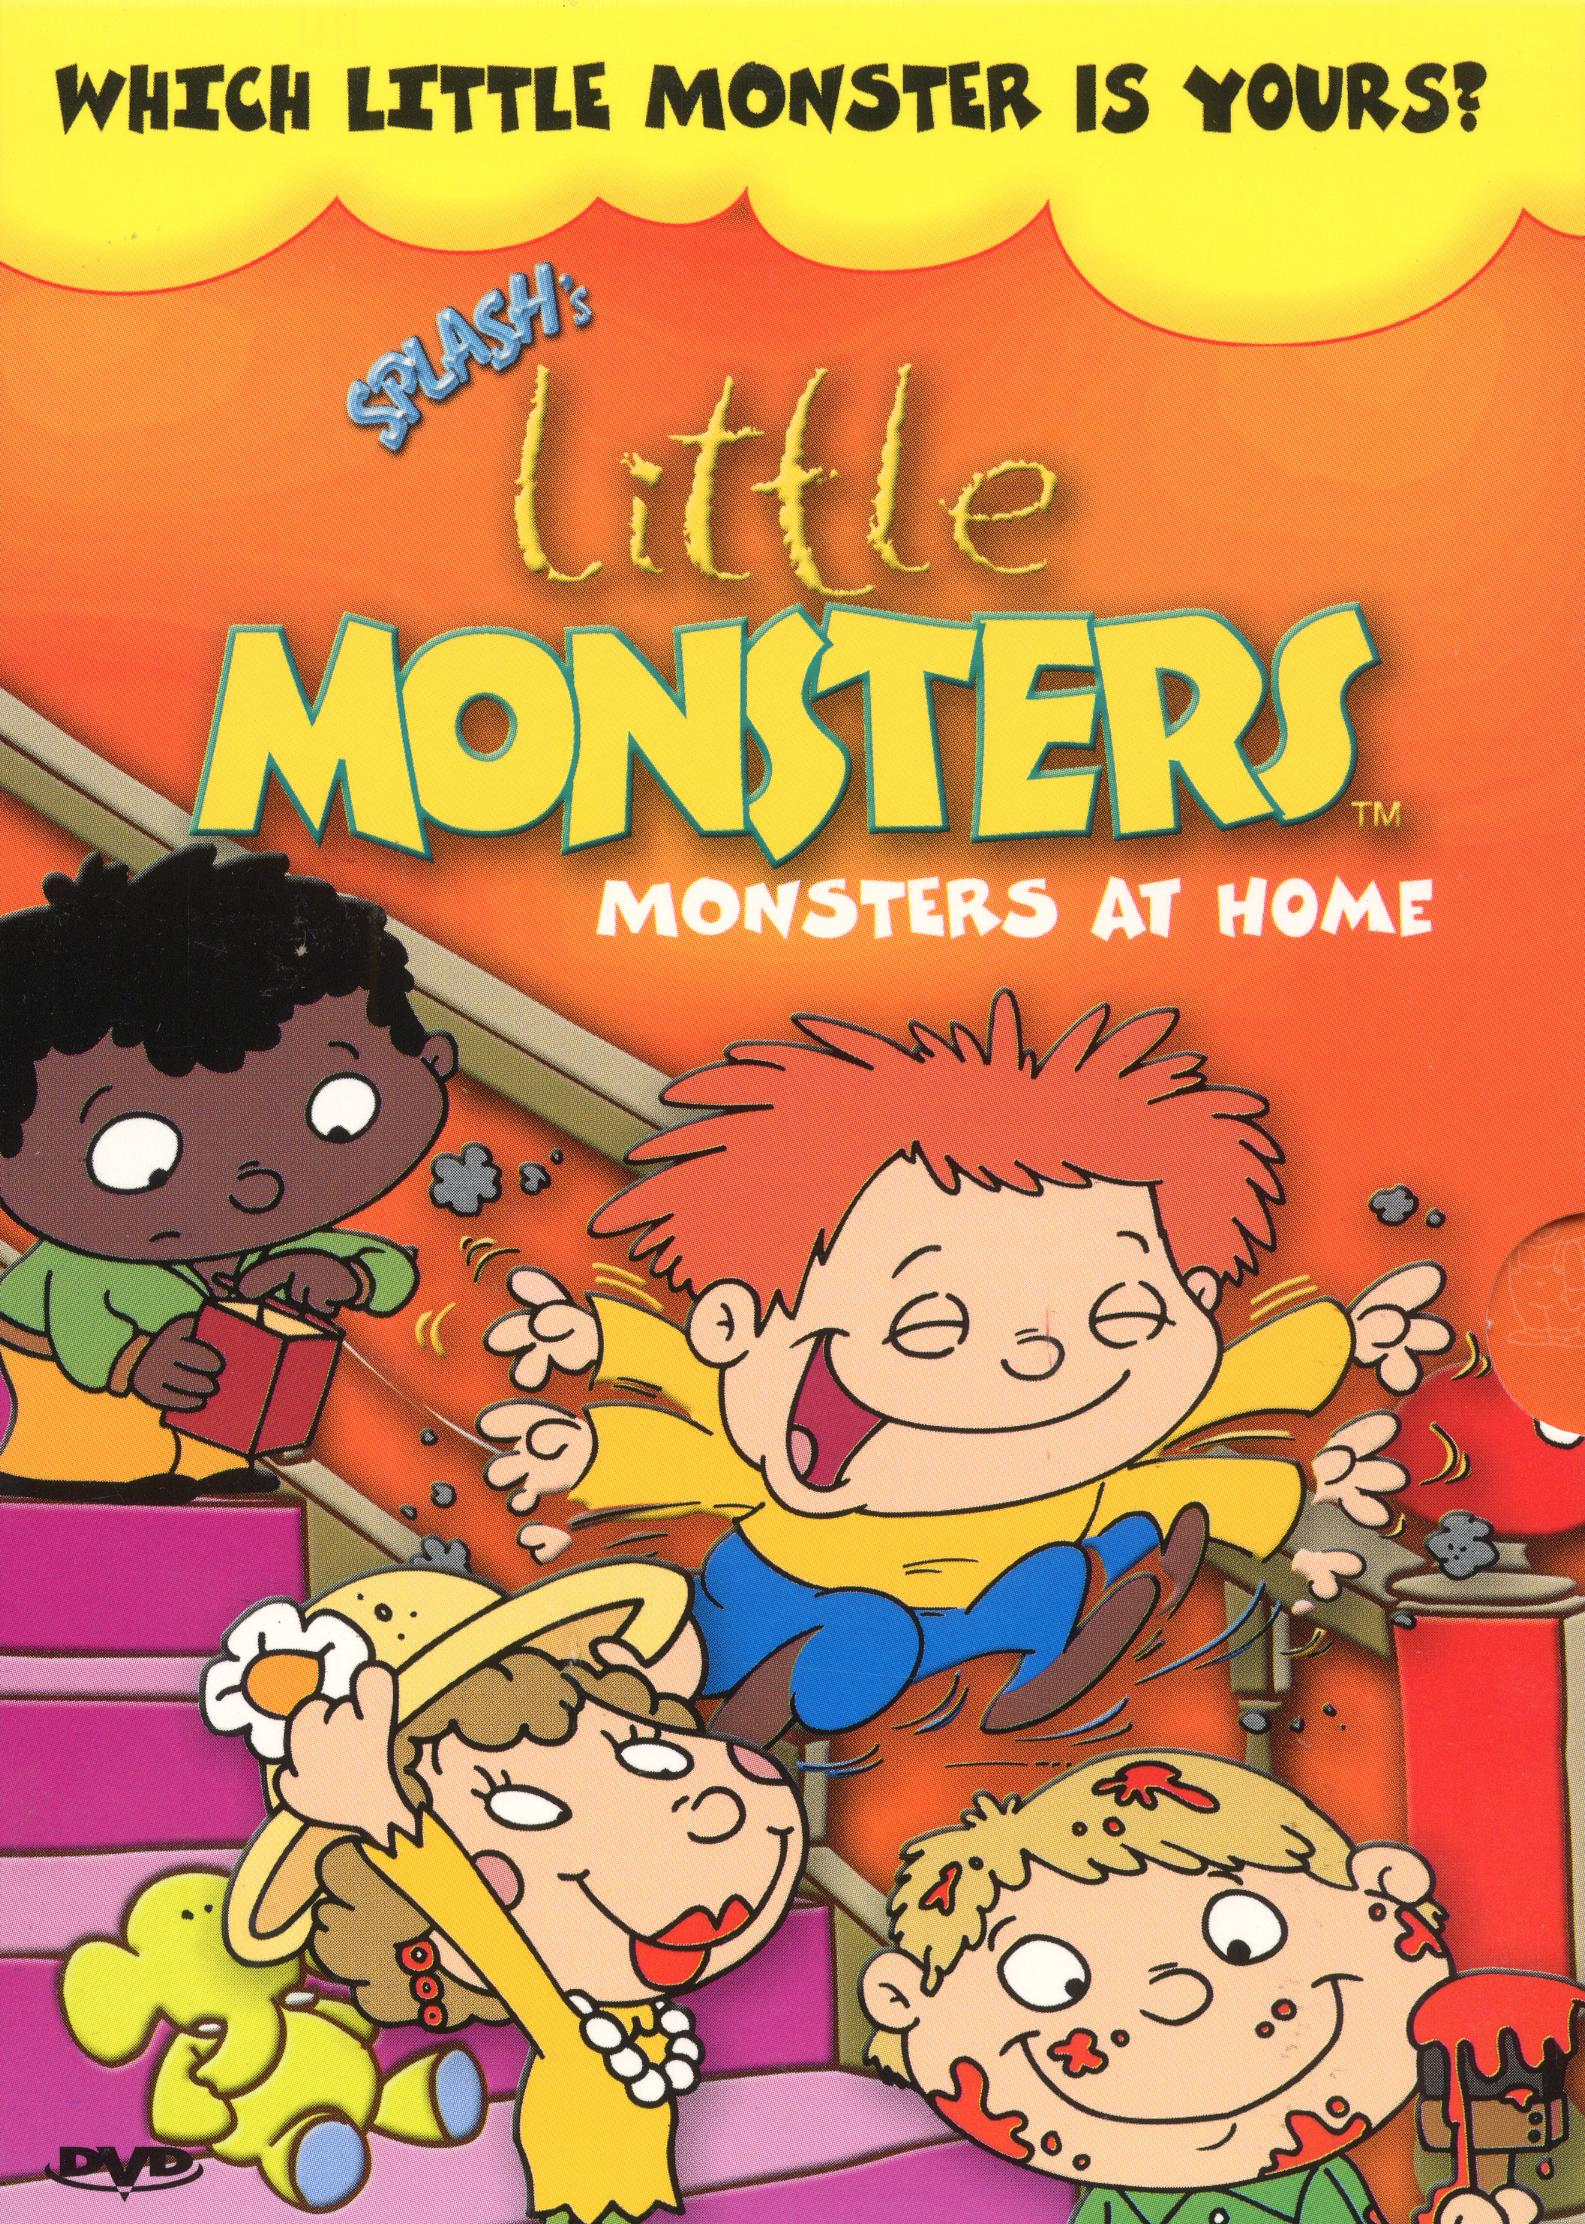 Little Monsters: Monsters at Home